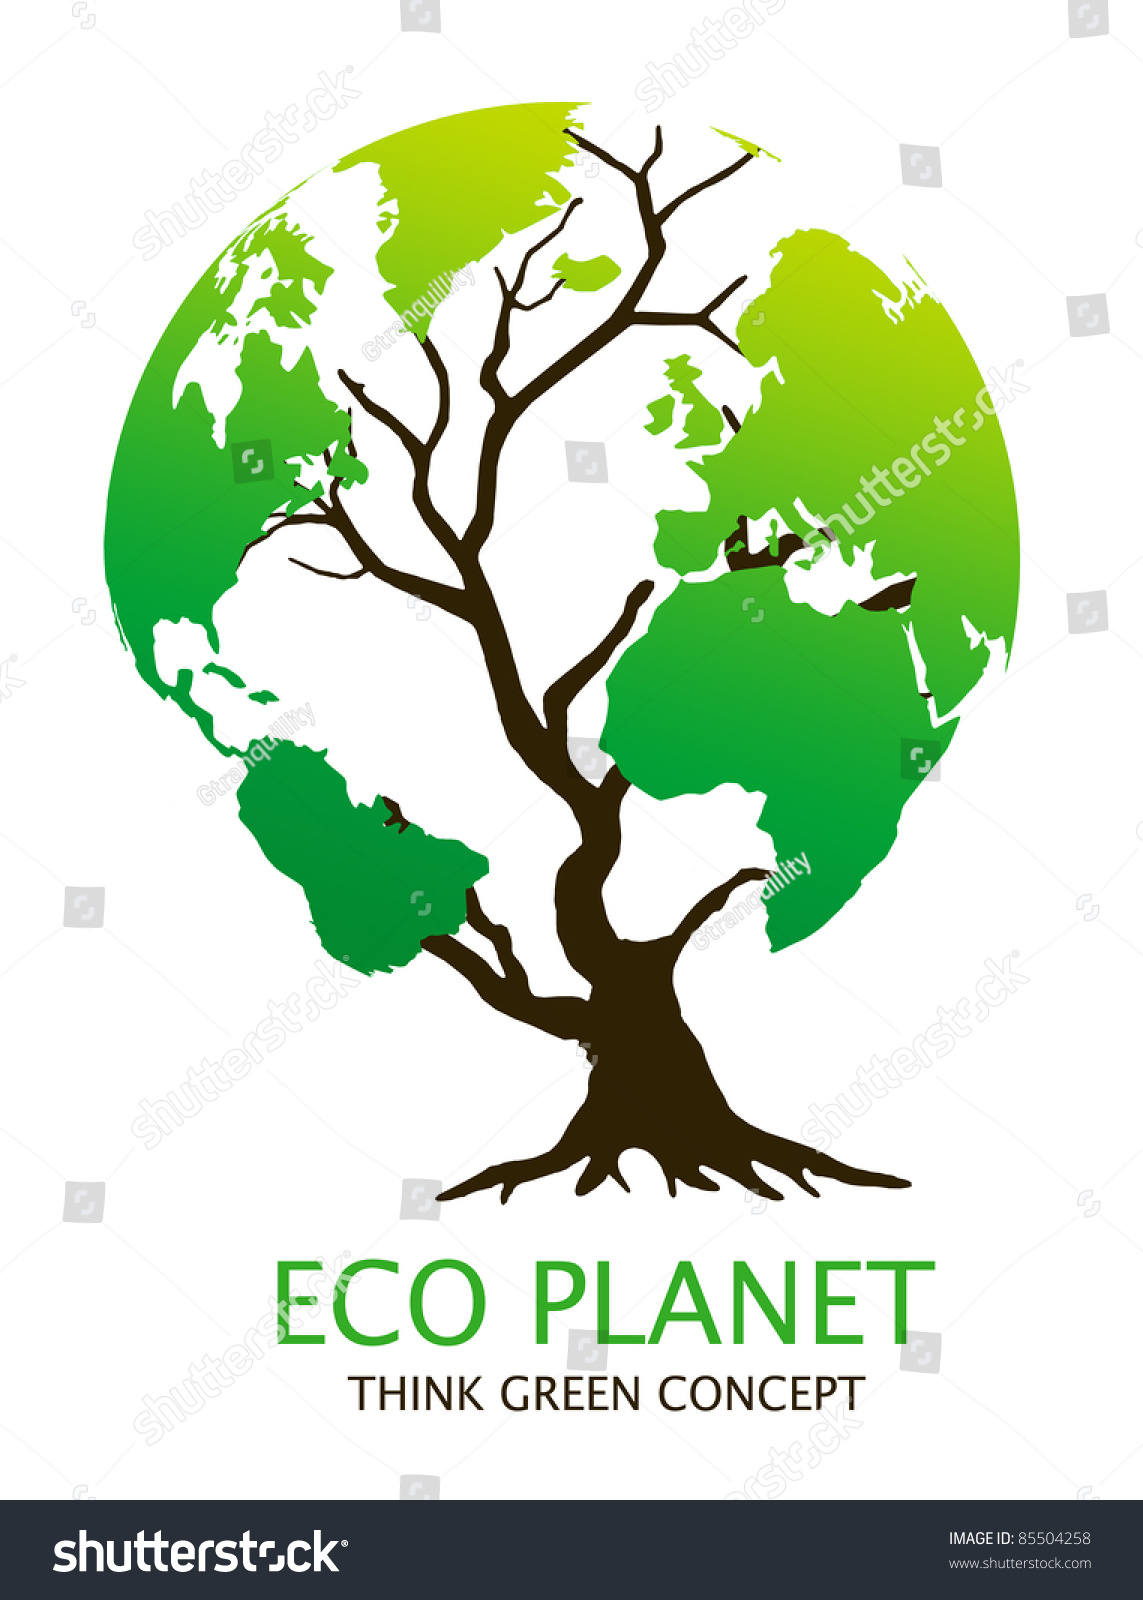 ecofriendly earth tree illustration green environment stock illustration 85504258 shutterstock. Black Bedroom Furniture Sets. Home Design Ideas